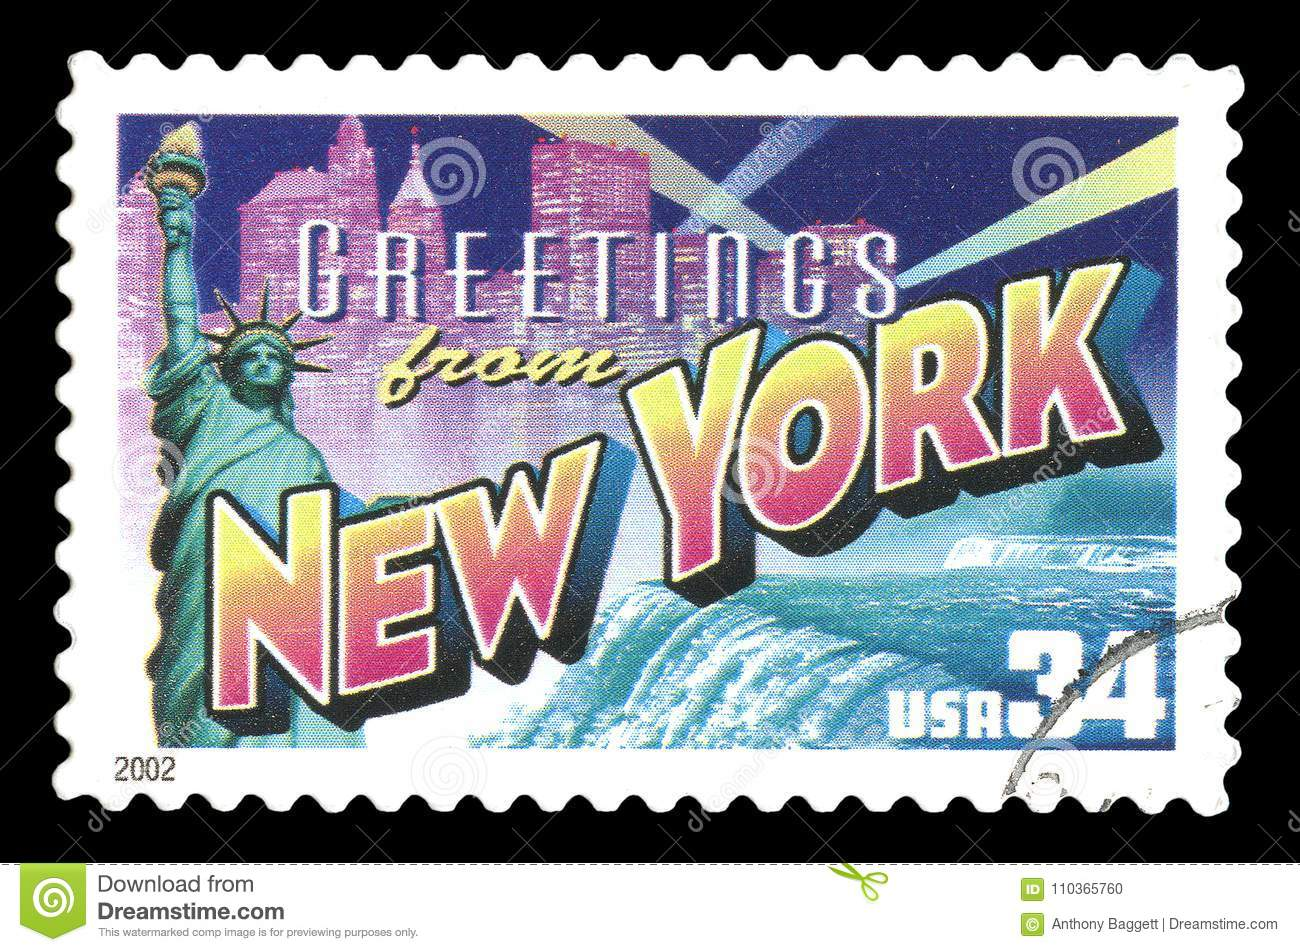 States of america cancelled postage stamp showing greetings from new states of america cancelled postage stamp showing greetings from new york cit kristyandbryce Images